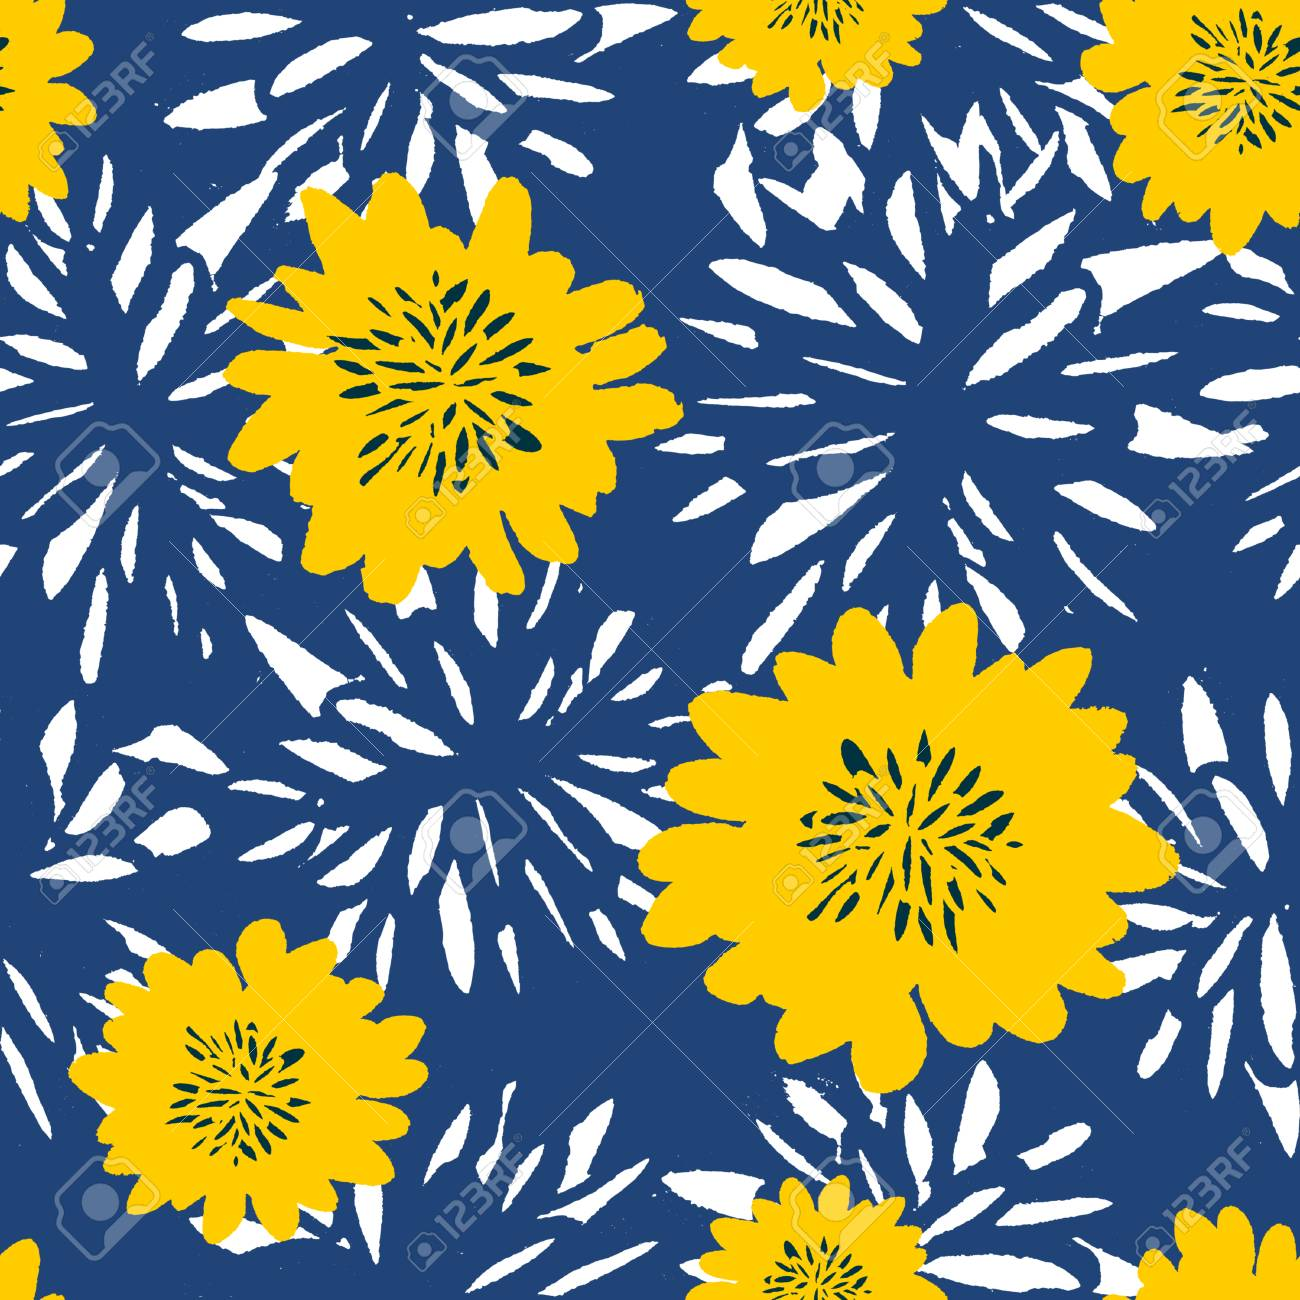 Seamless Repeat Pattern With Flowers In White And Yellow On Blue ...